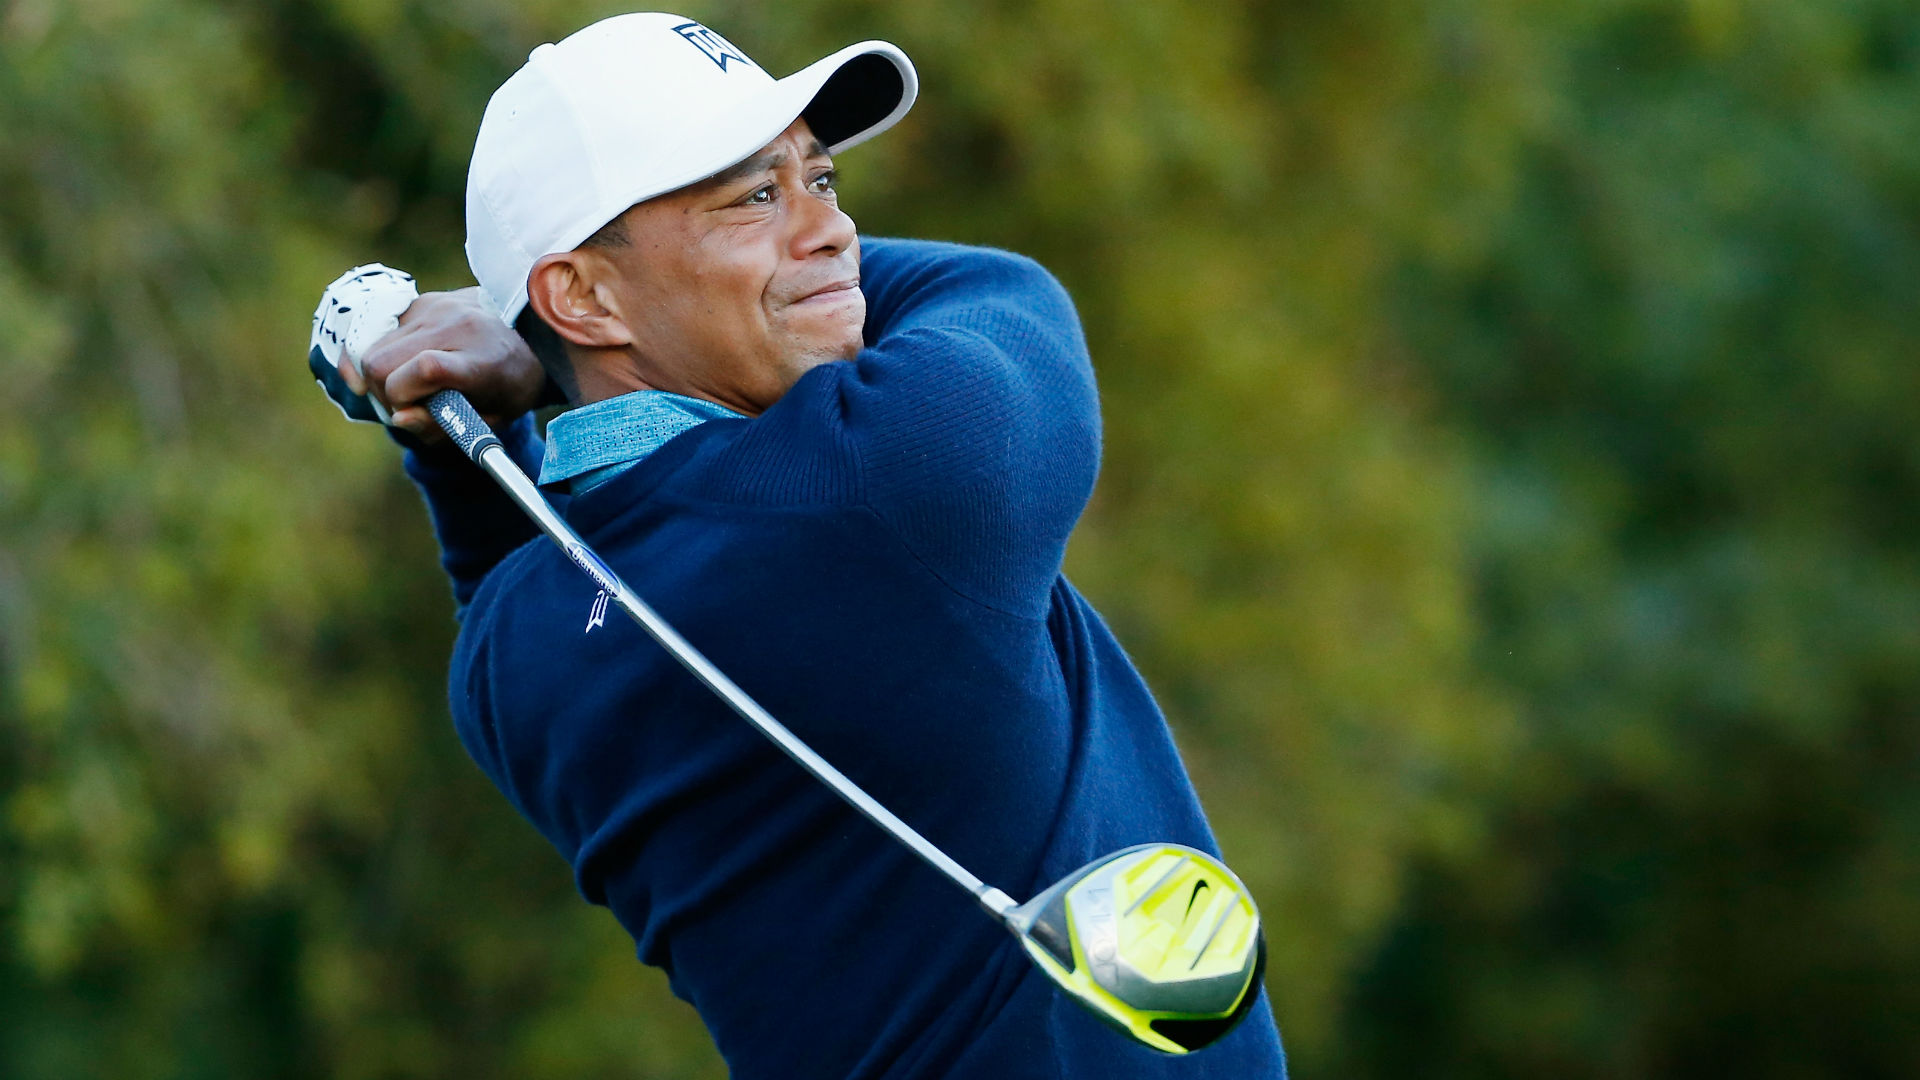 Phoenix Open odds and picks - Tiger makes 2015 PGA Tour debut